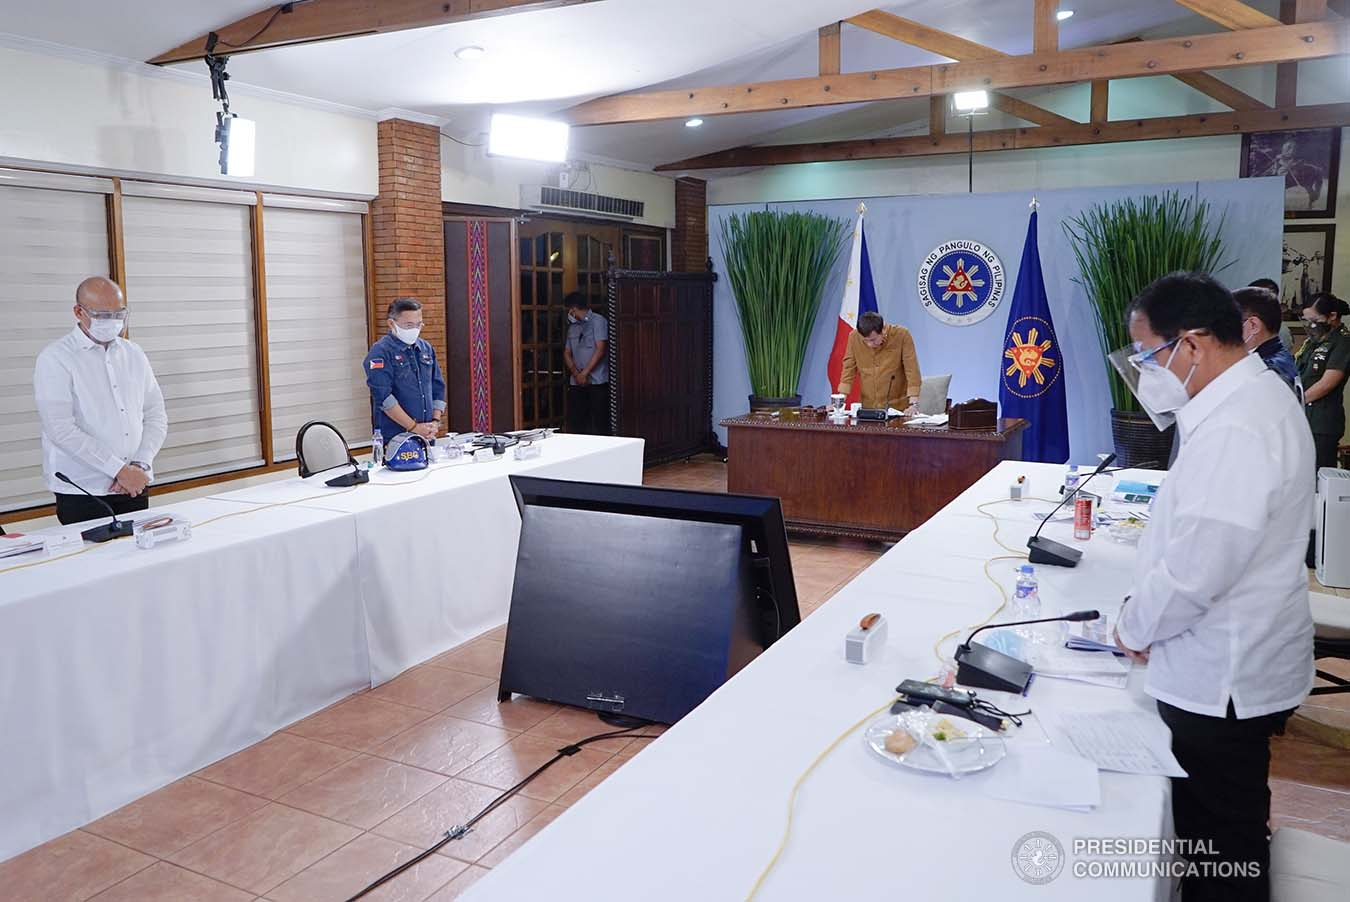 President Rodrigo Roa Duterte together with his Cabinet members bow their heads in prayer for the departed soul of Presidential Legislative Liaison Secretary Adelino Sitoy who succumbed to Covid-19 during the meeting with the Inter-Agency Task Force on the Emerging Infectious Diseases (IATF-EID) core members at the Malacañang Golf (Malago) Clubhouse in Malacañang Park, Manila on April 15, 2021. KING RODRIGUEZ/ PRESIDENTIAL PHOTO